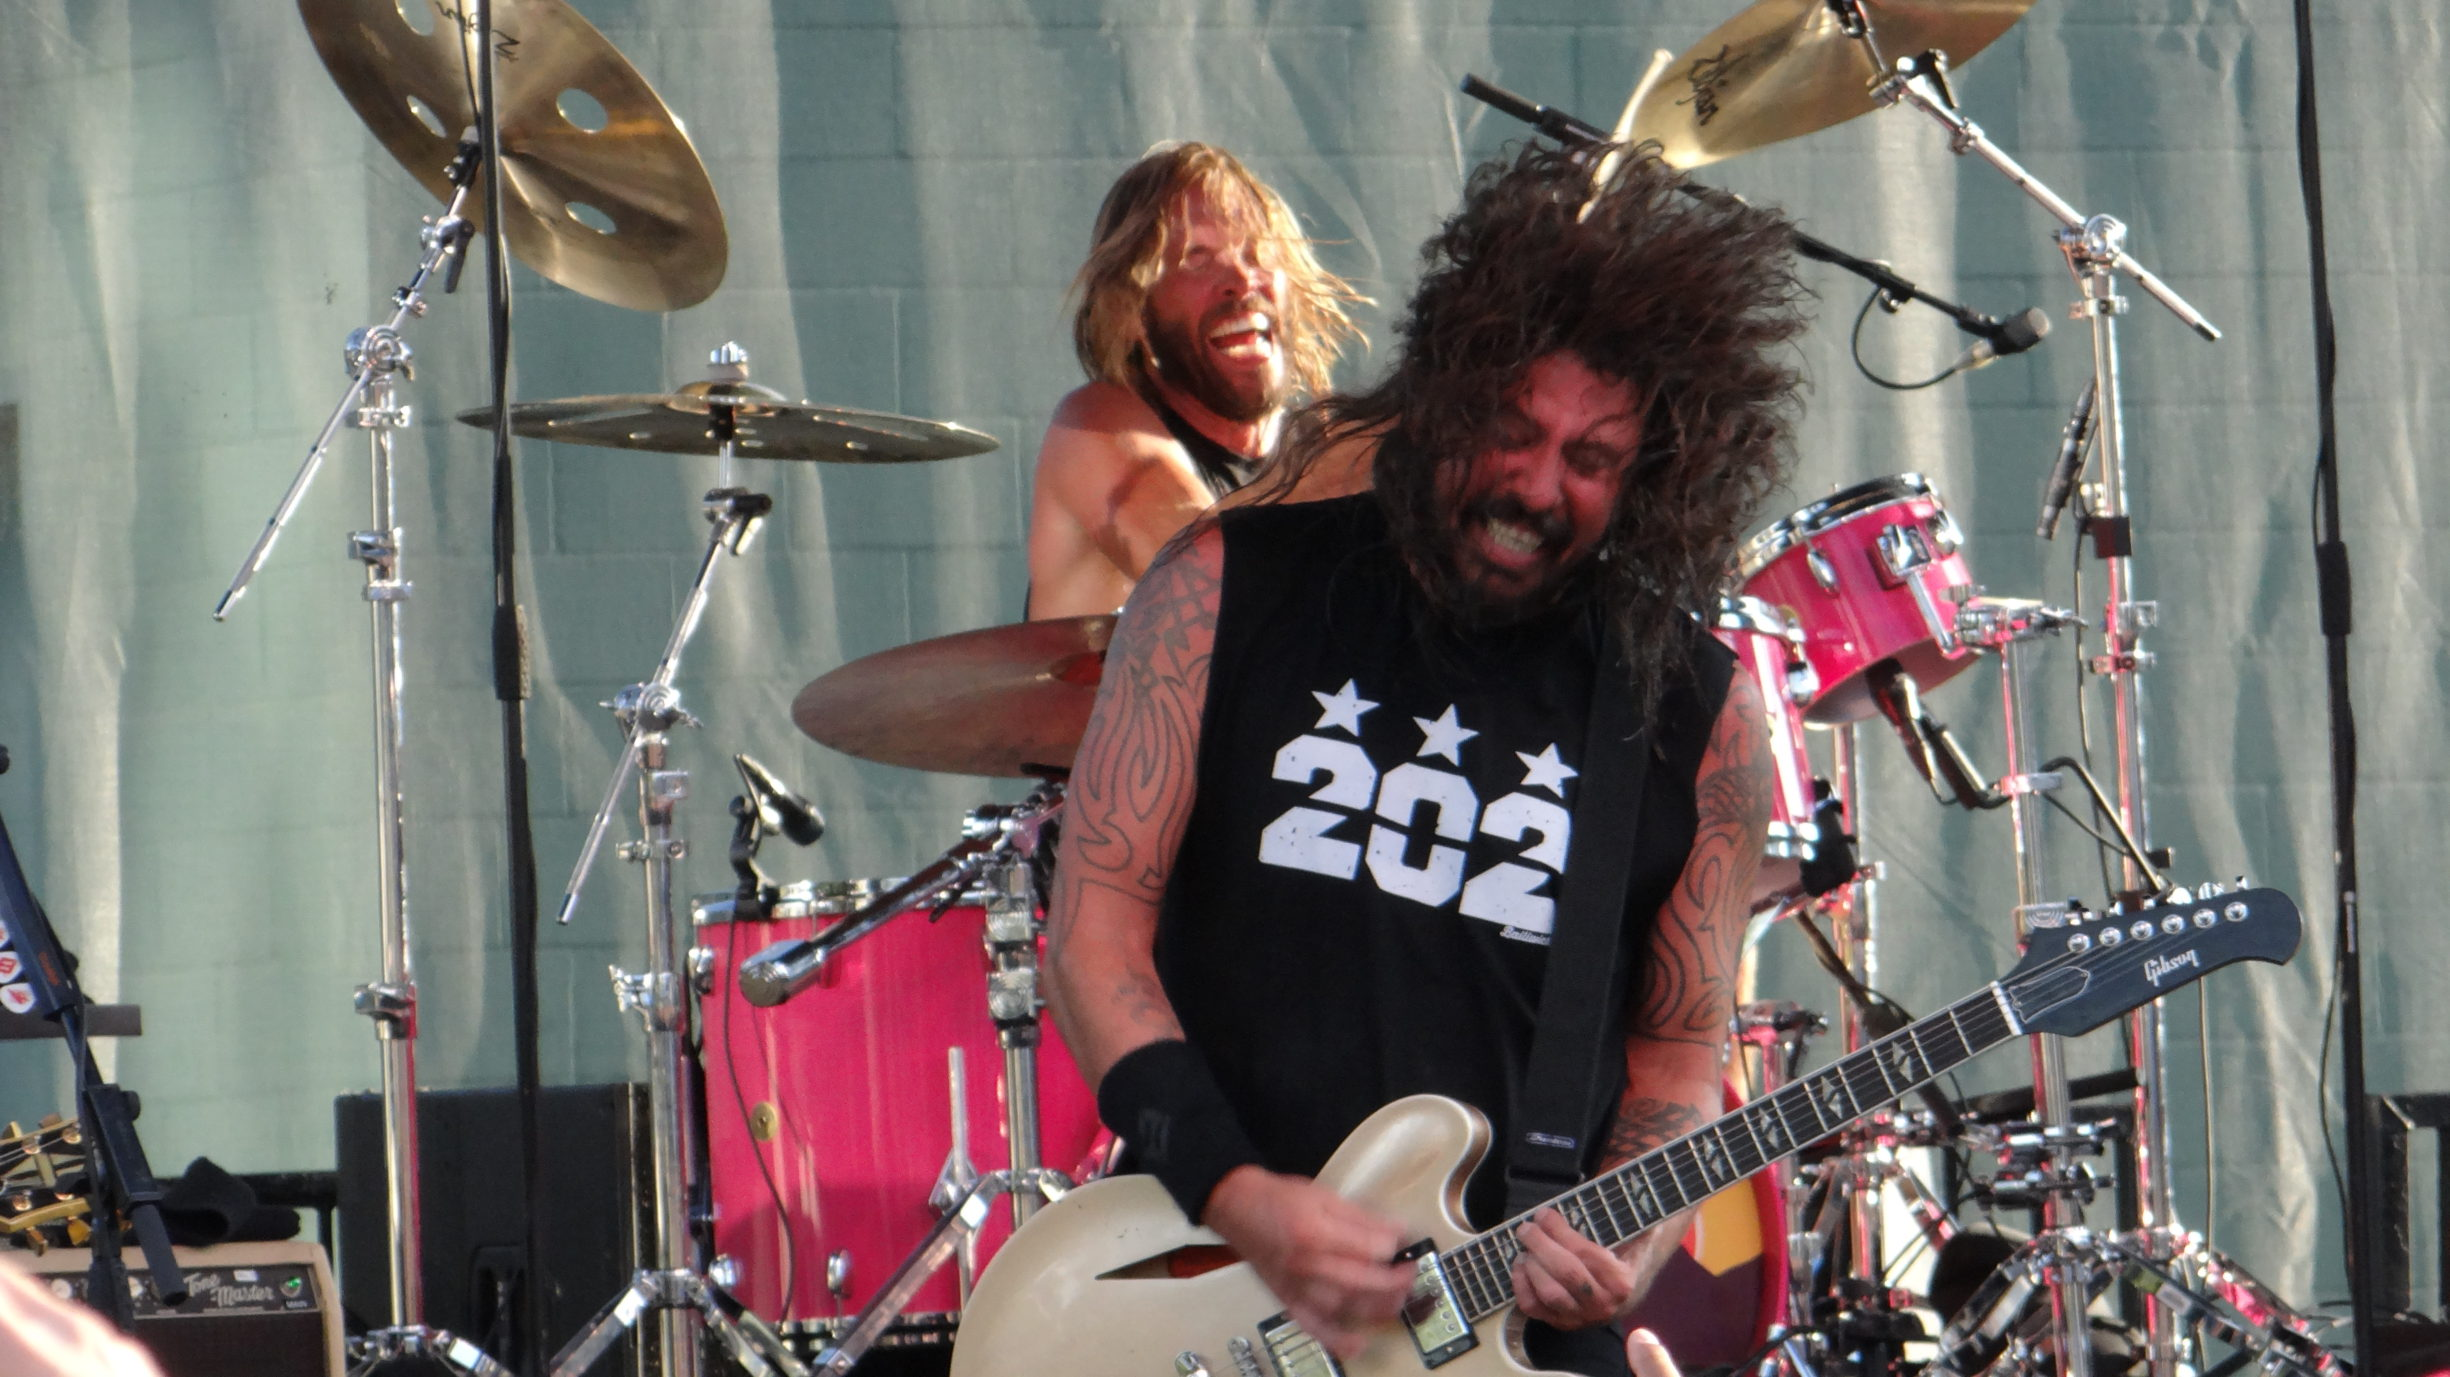 Headbanging with Dave Grohl